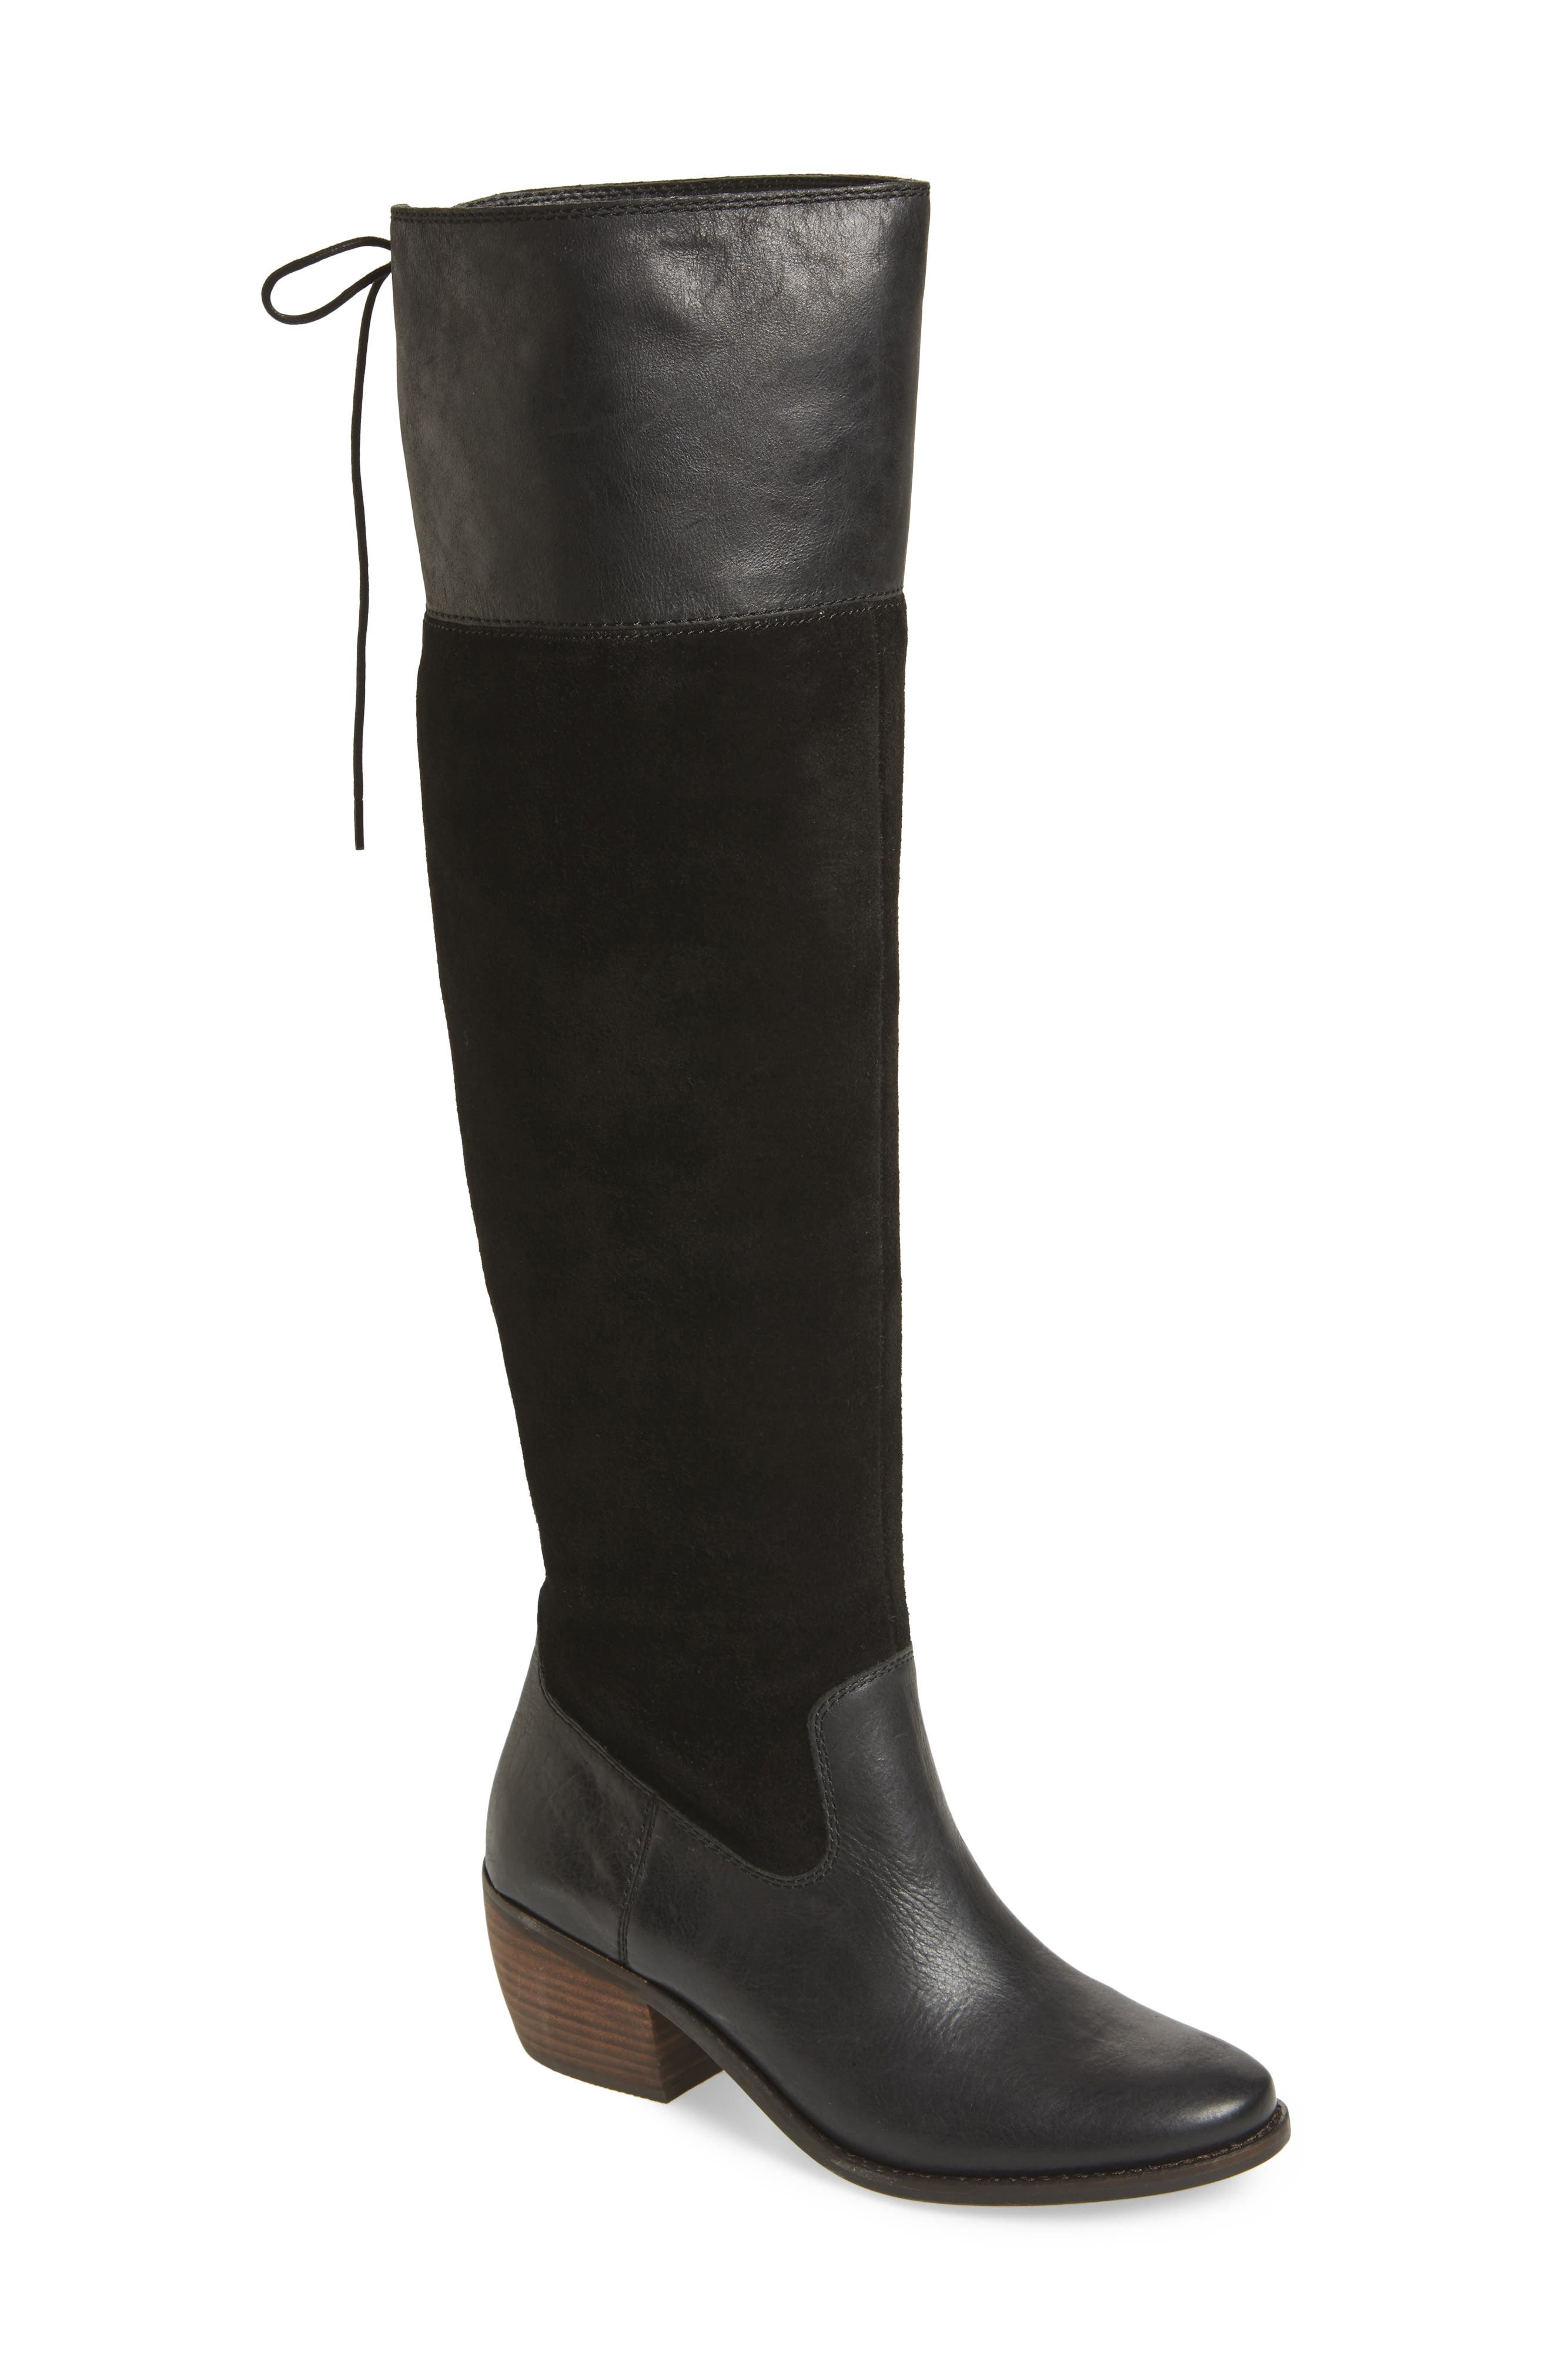 Komah Over the Knee Boot,                         Main,                         color, 001